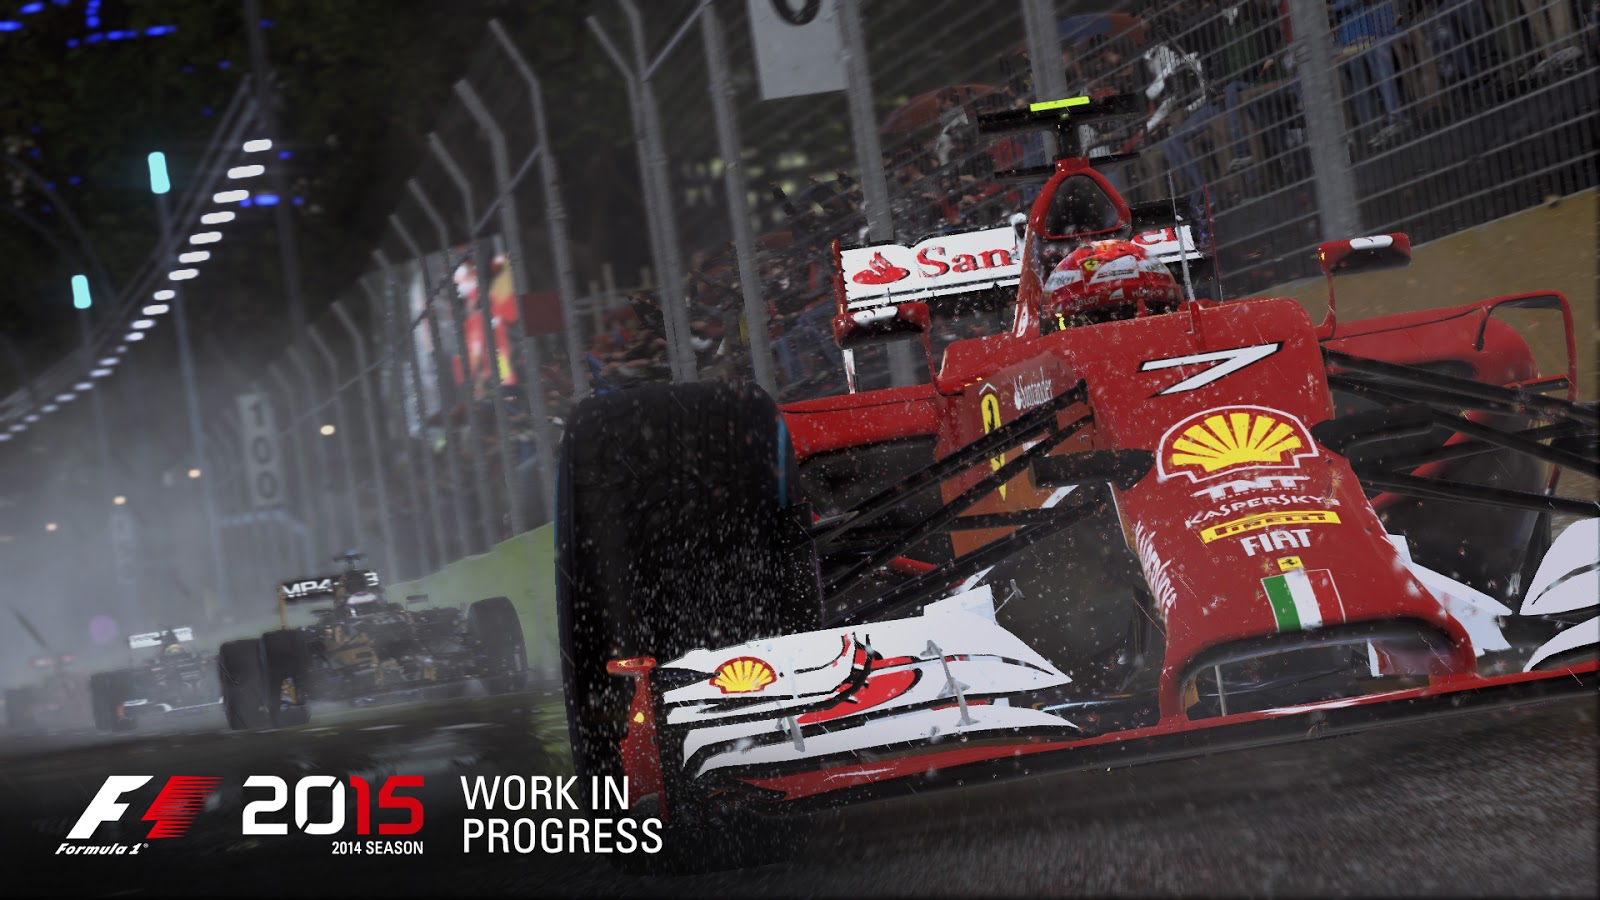 F1 2015 Free Download PC Games